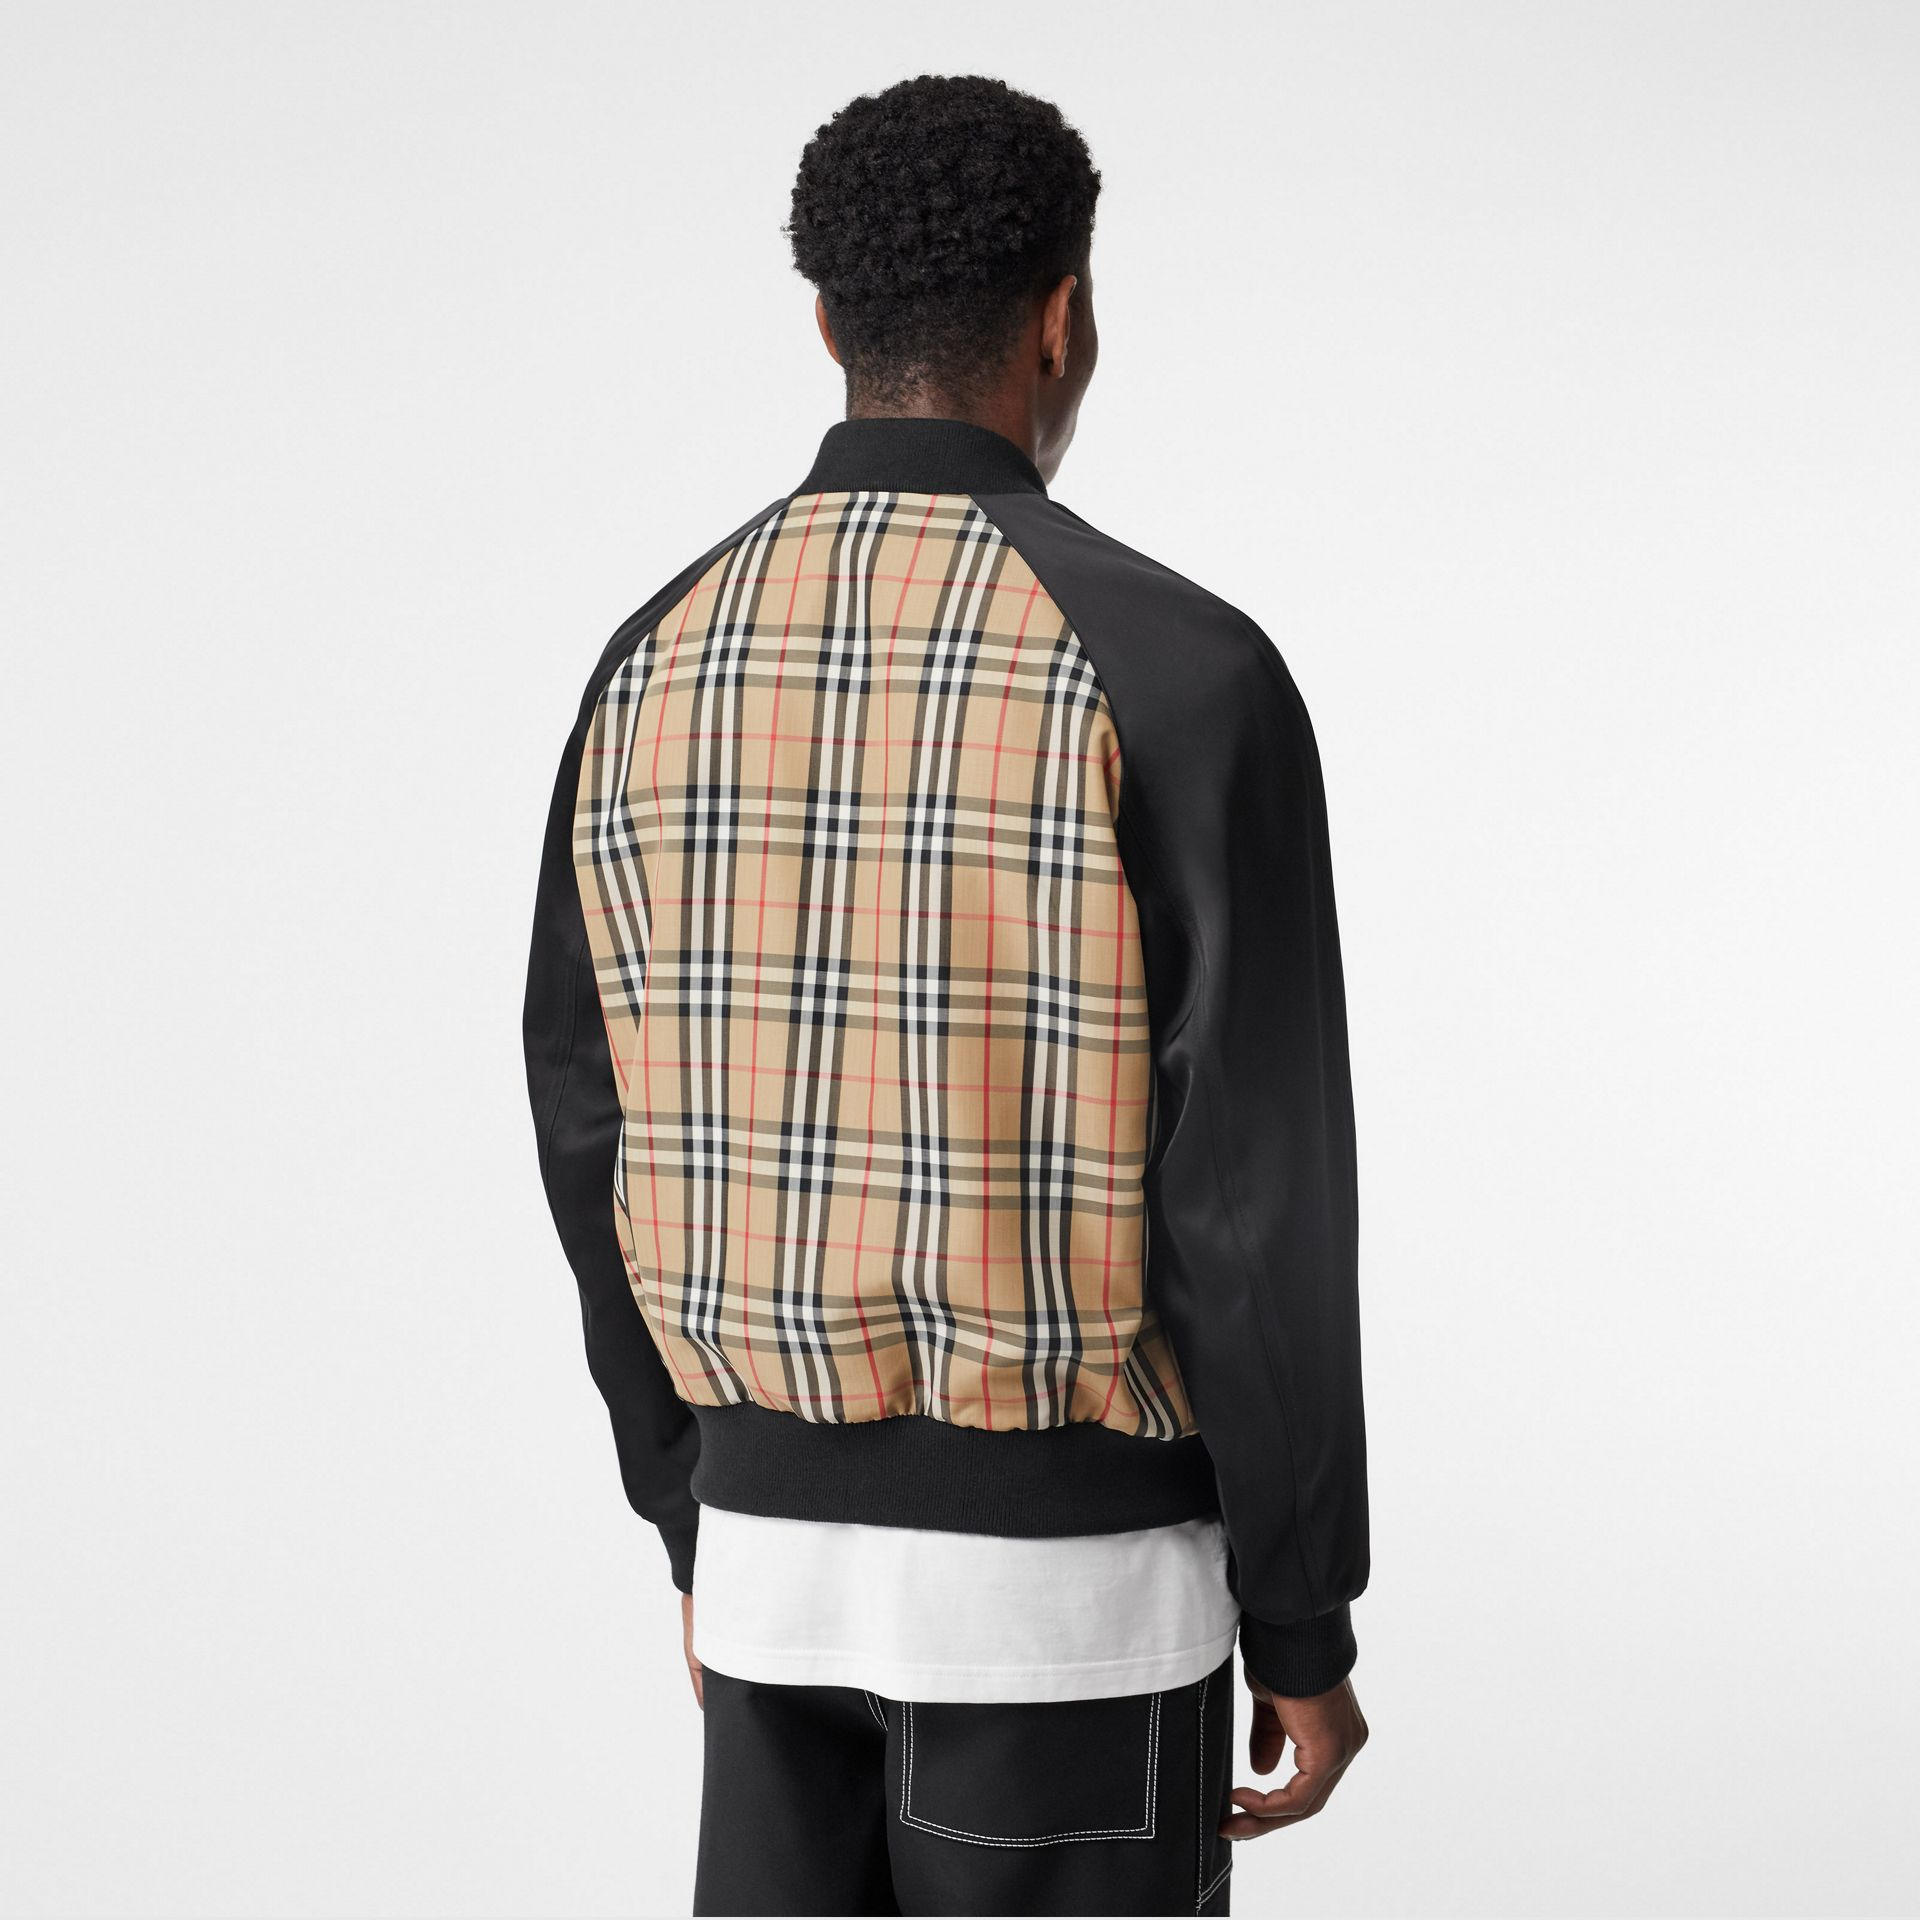 Monogram Motif Vintage Check Nylon Bomber Jacket in Archive Beige - Men | Burberry - gallery image 2